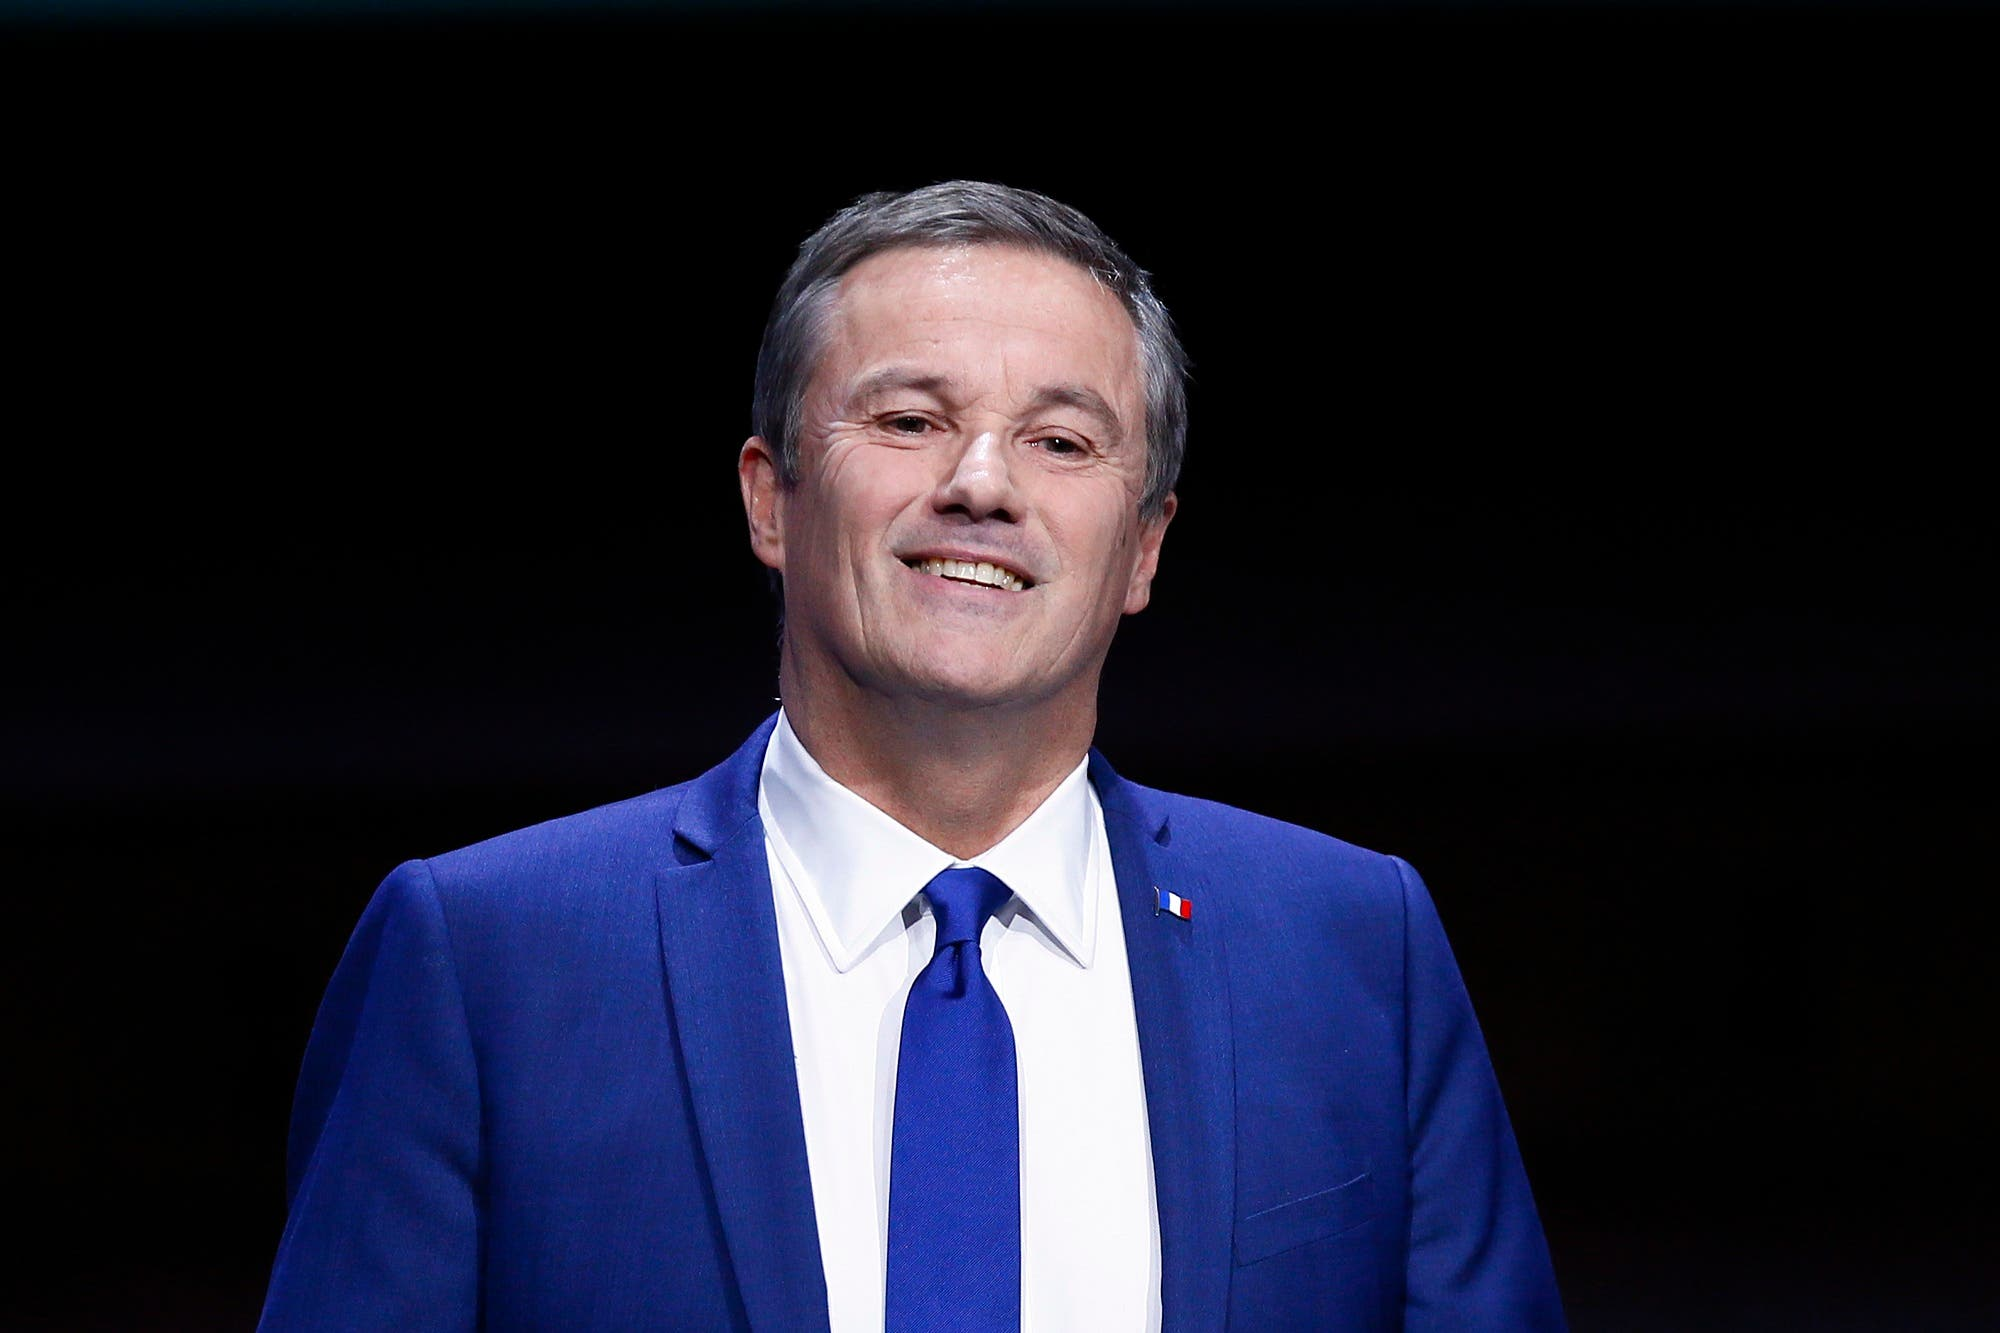 Independent candidate for the 2017 French Presidential election Nicolas Dupont Aignan delivers his speech during the Gathering of French Mayors at Maison de la Radio in Paris, Wednesday, March 22, 2017. (AP Photo/Francois Mori)